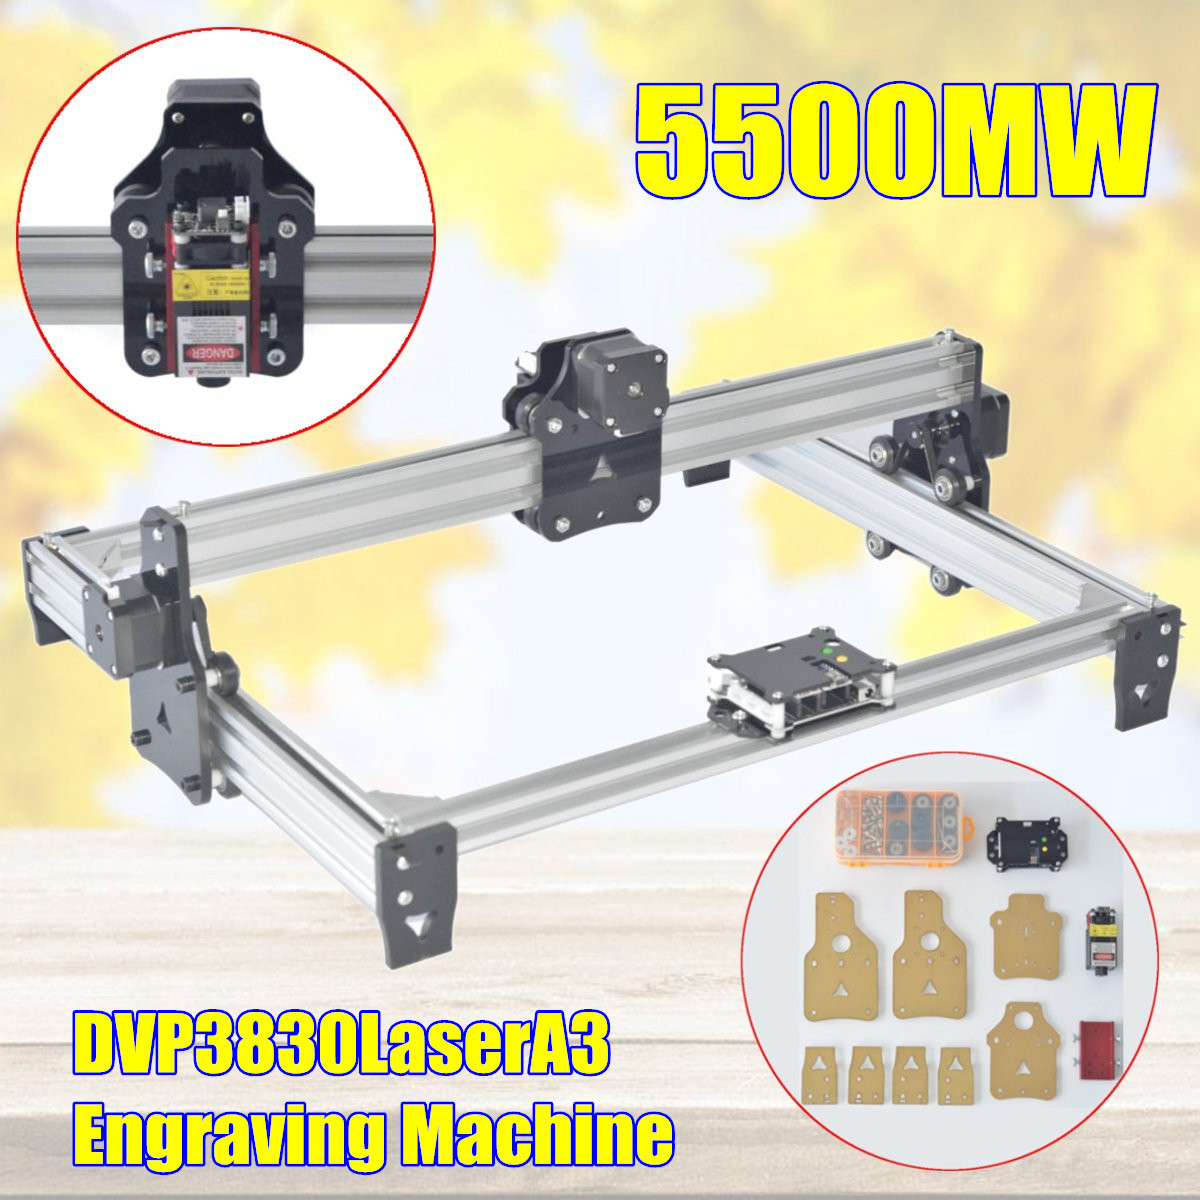 5500mw DVP 3830 Laser A3 Engraving Machine,DIY Laser Engraver Machine,Wood Router,laser cutter,cnc router,Woodworking Machinery цены